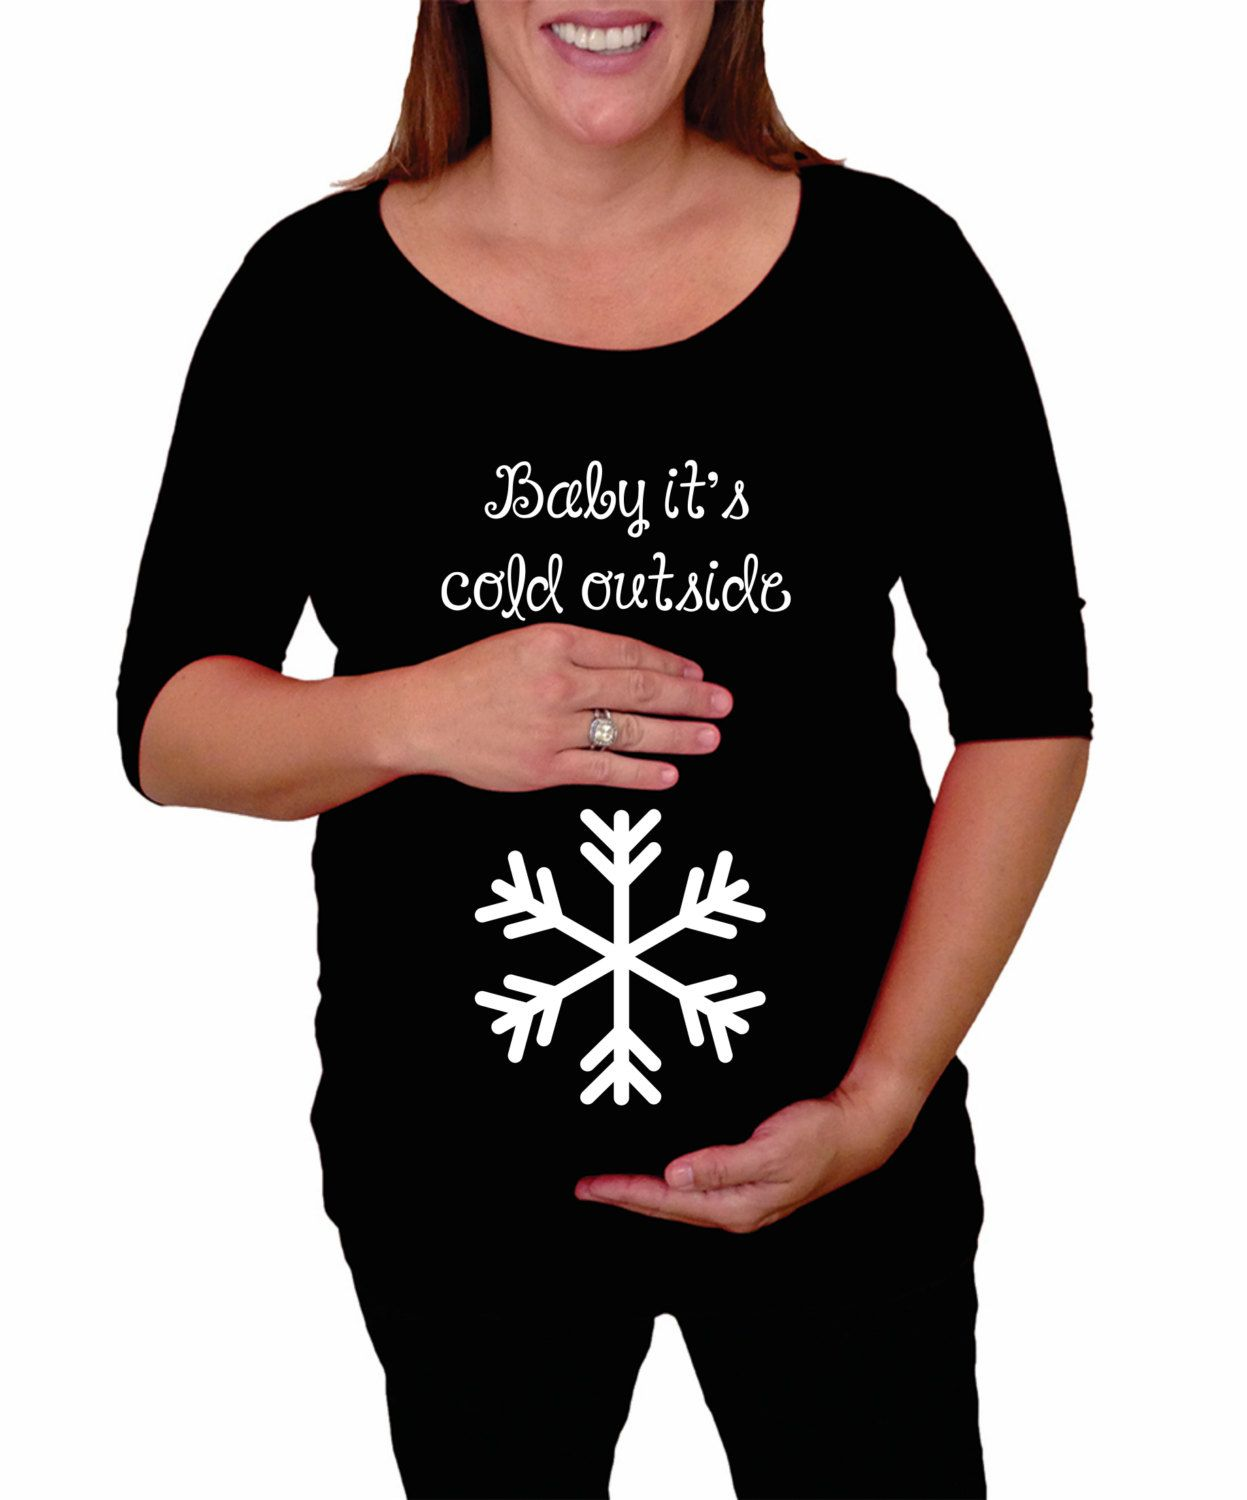 6f77af0ce3bf5 Christmas Pregnancy Announcement Winter Pregnancy t